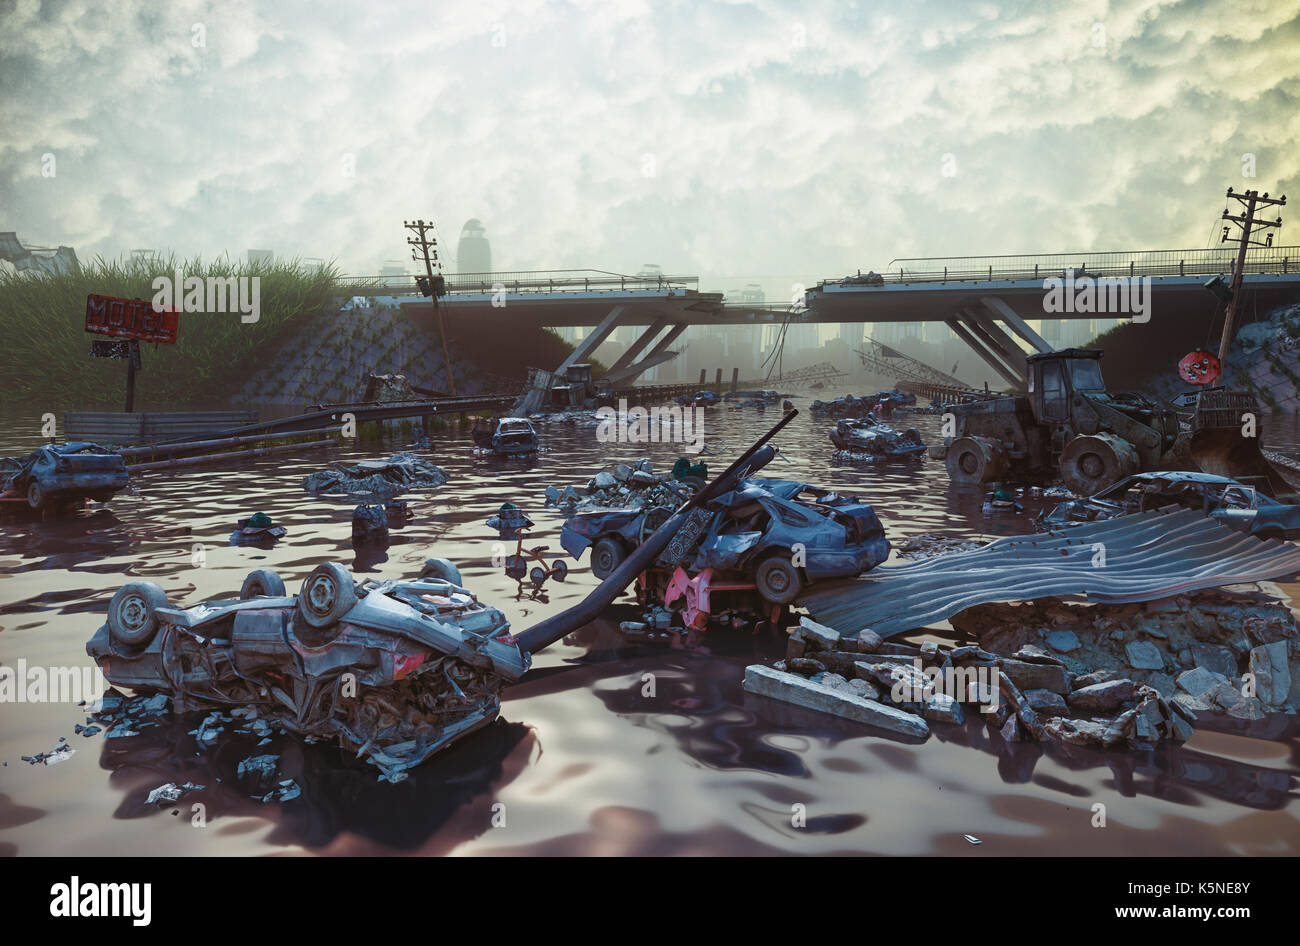 Ruins of the flooding city. Apocalyptic landscape.3d illustration concept - Stock Image